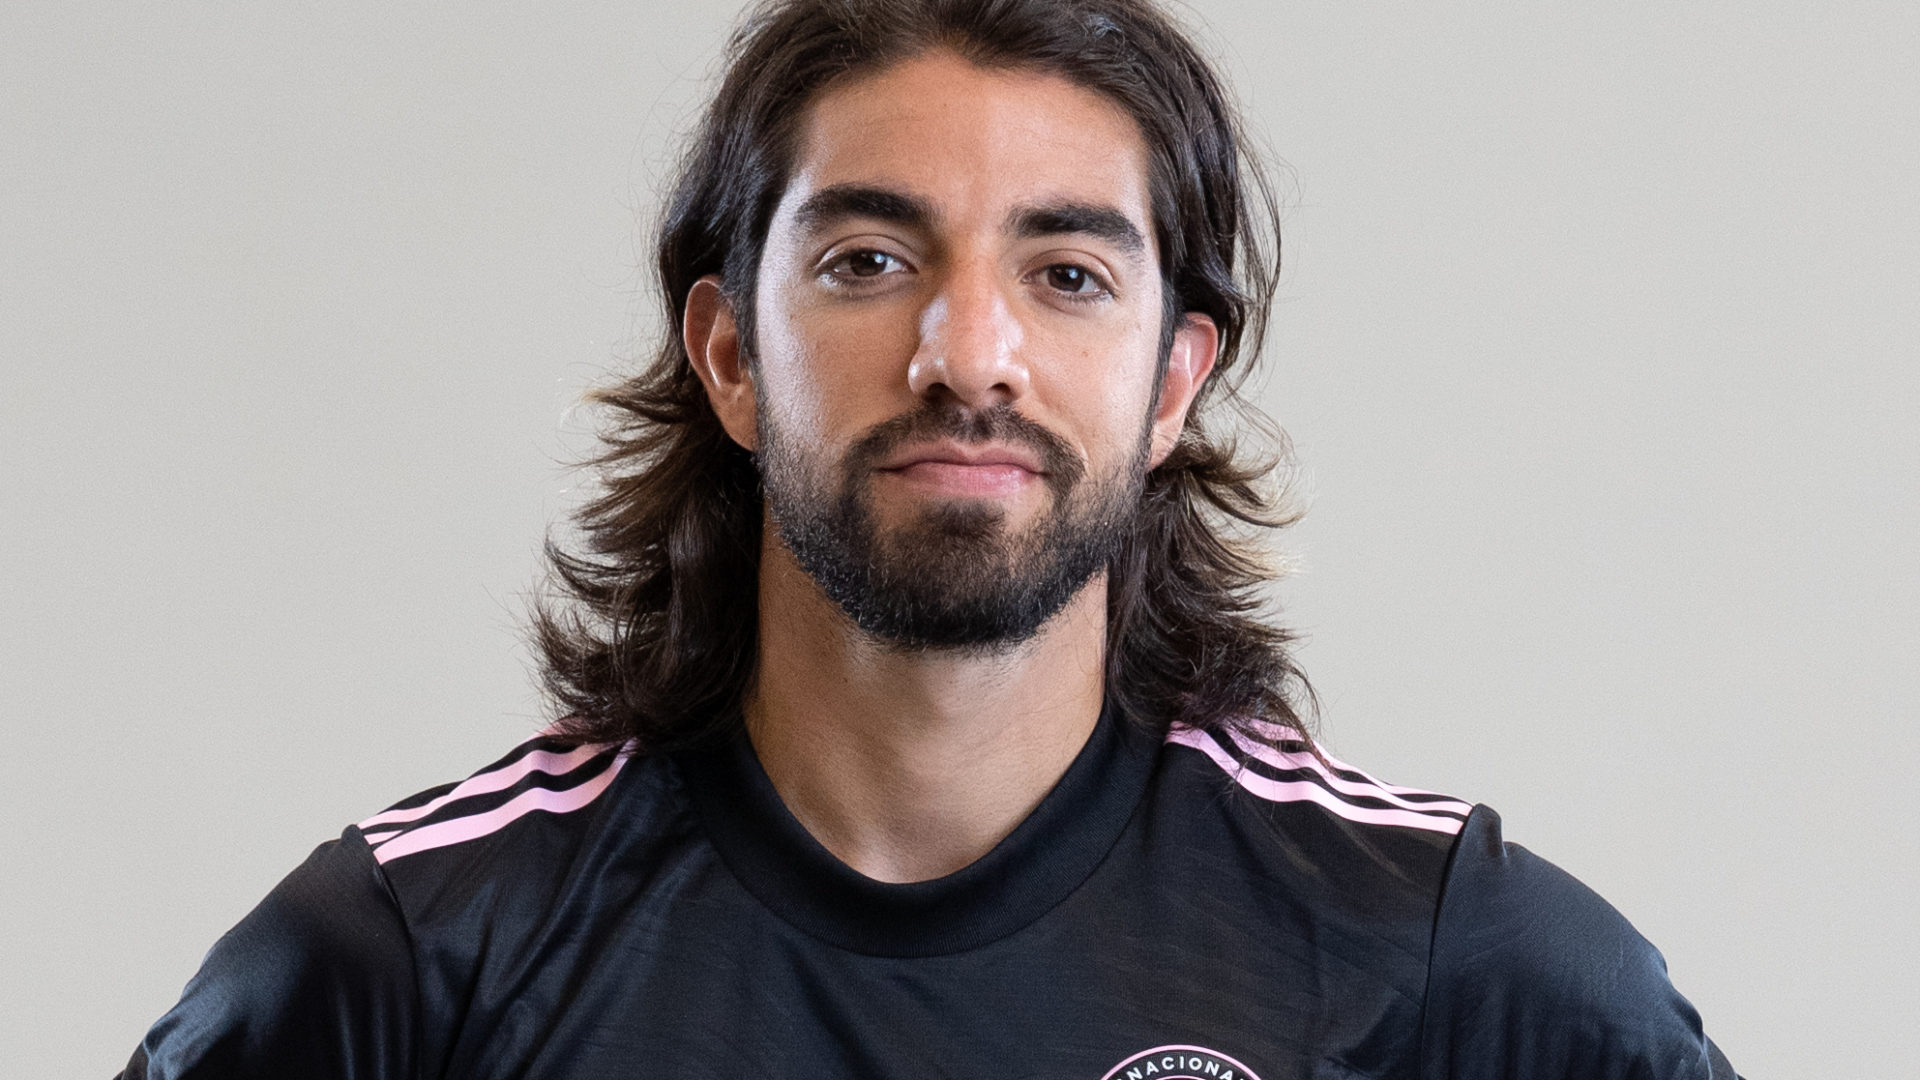 Inter Miami's Pizarro wins MLS Player of the Week